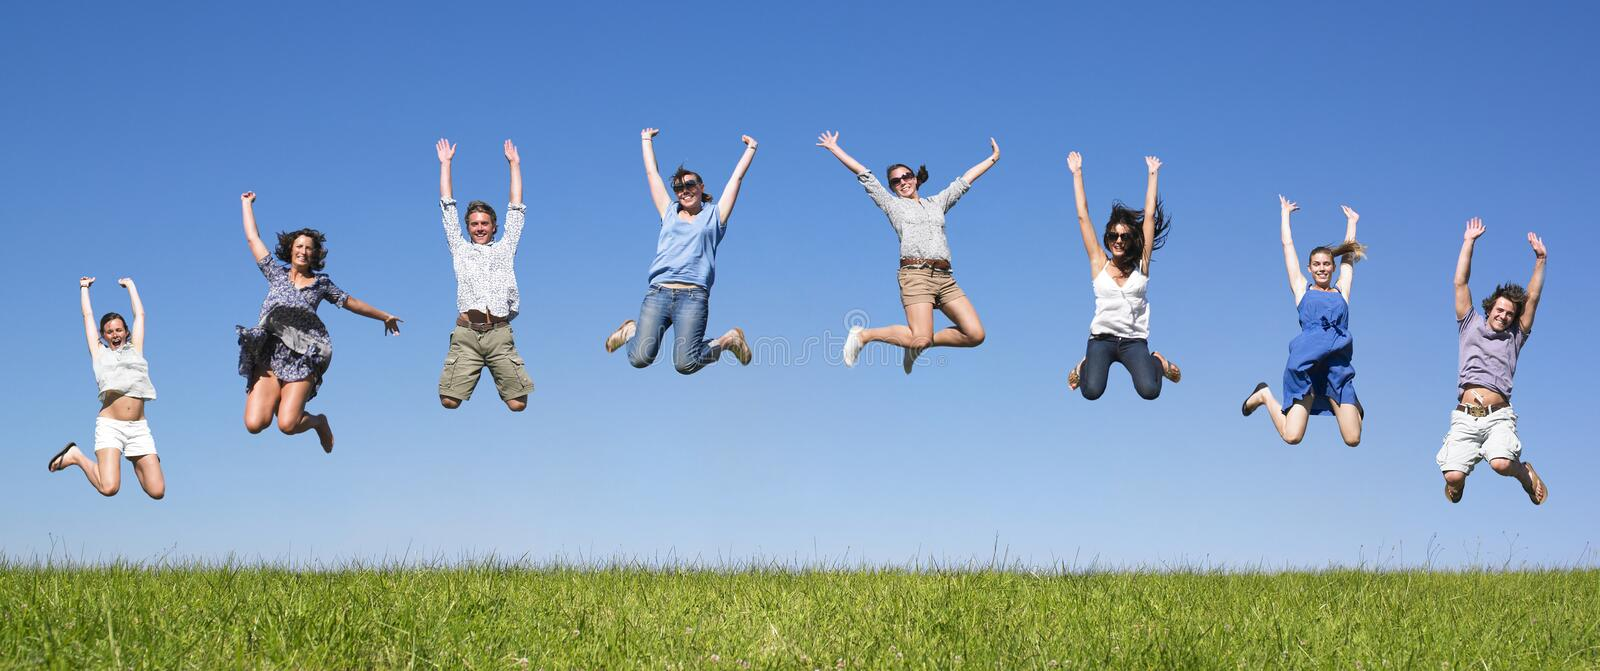 Download Group jumping stock image. Image of family, horizontal - 11181793